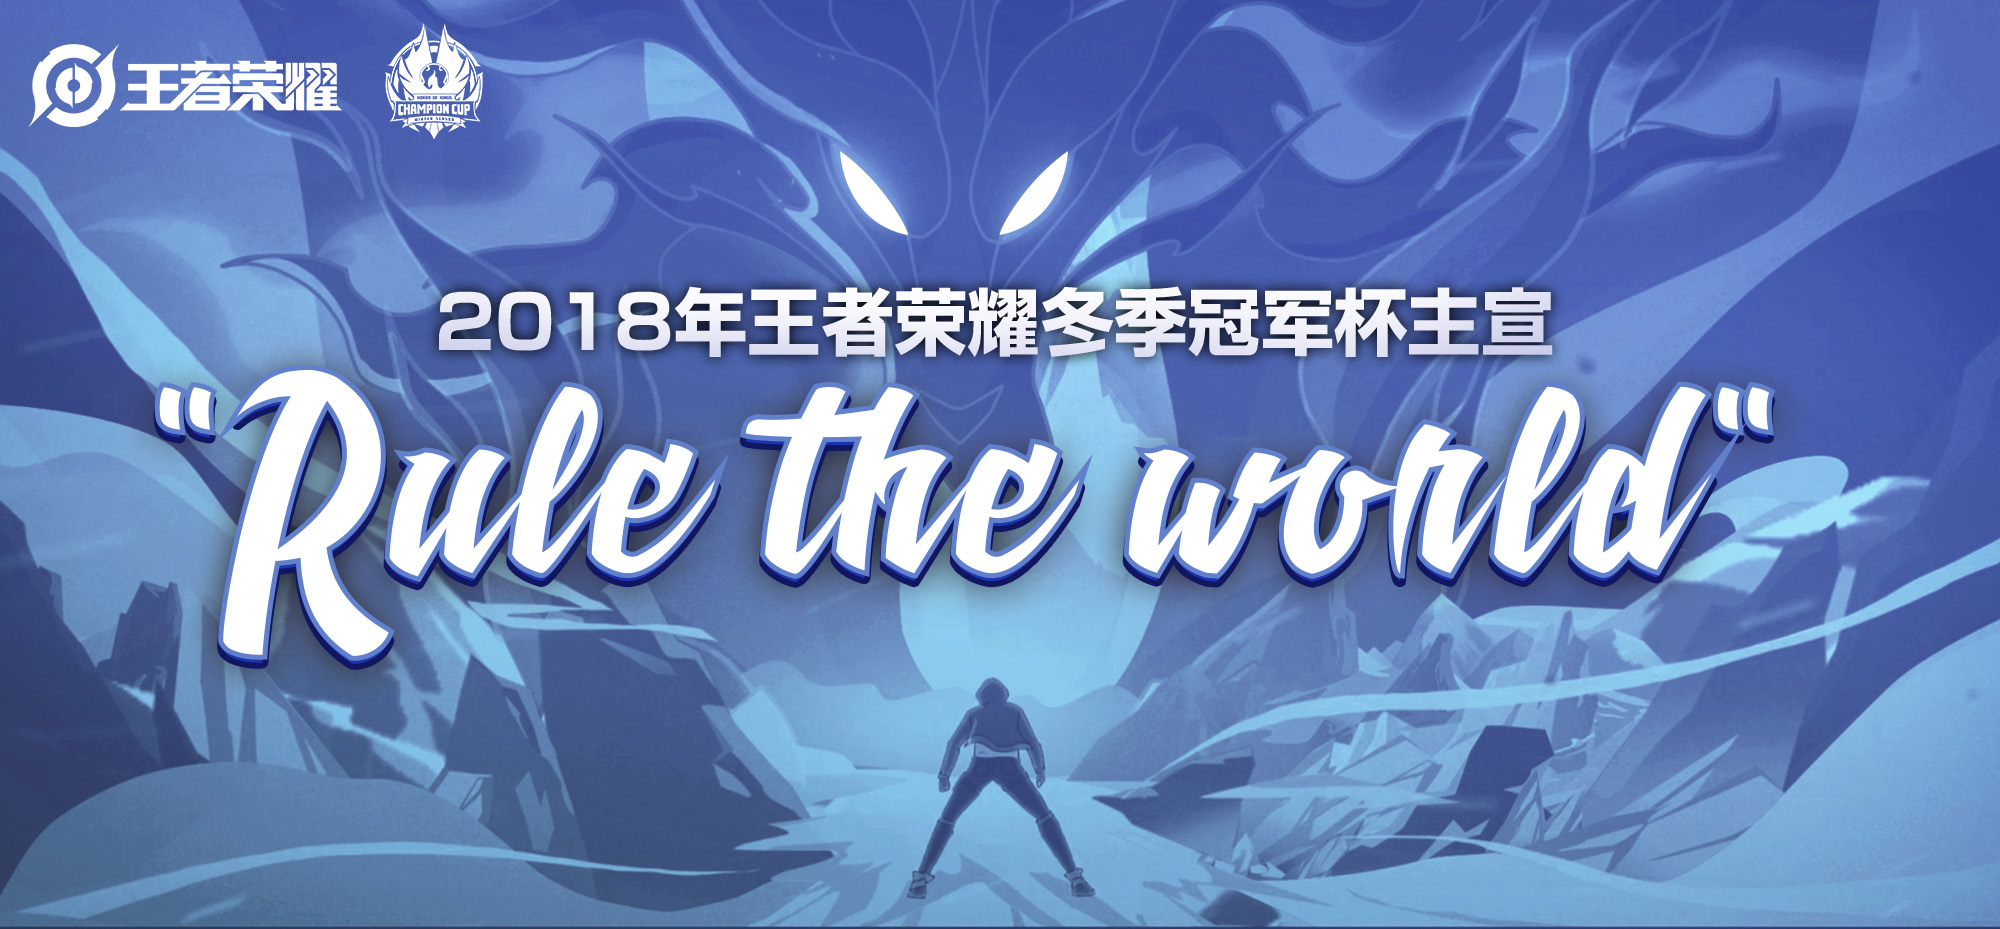 2018��瀛e������涓诲�d���Rule the World